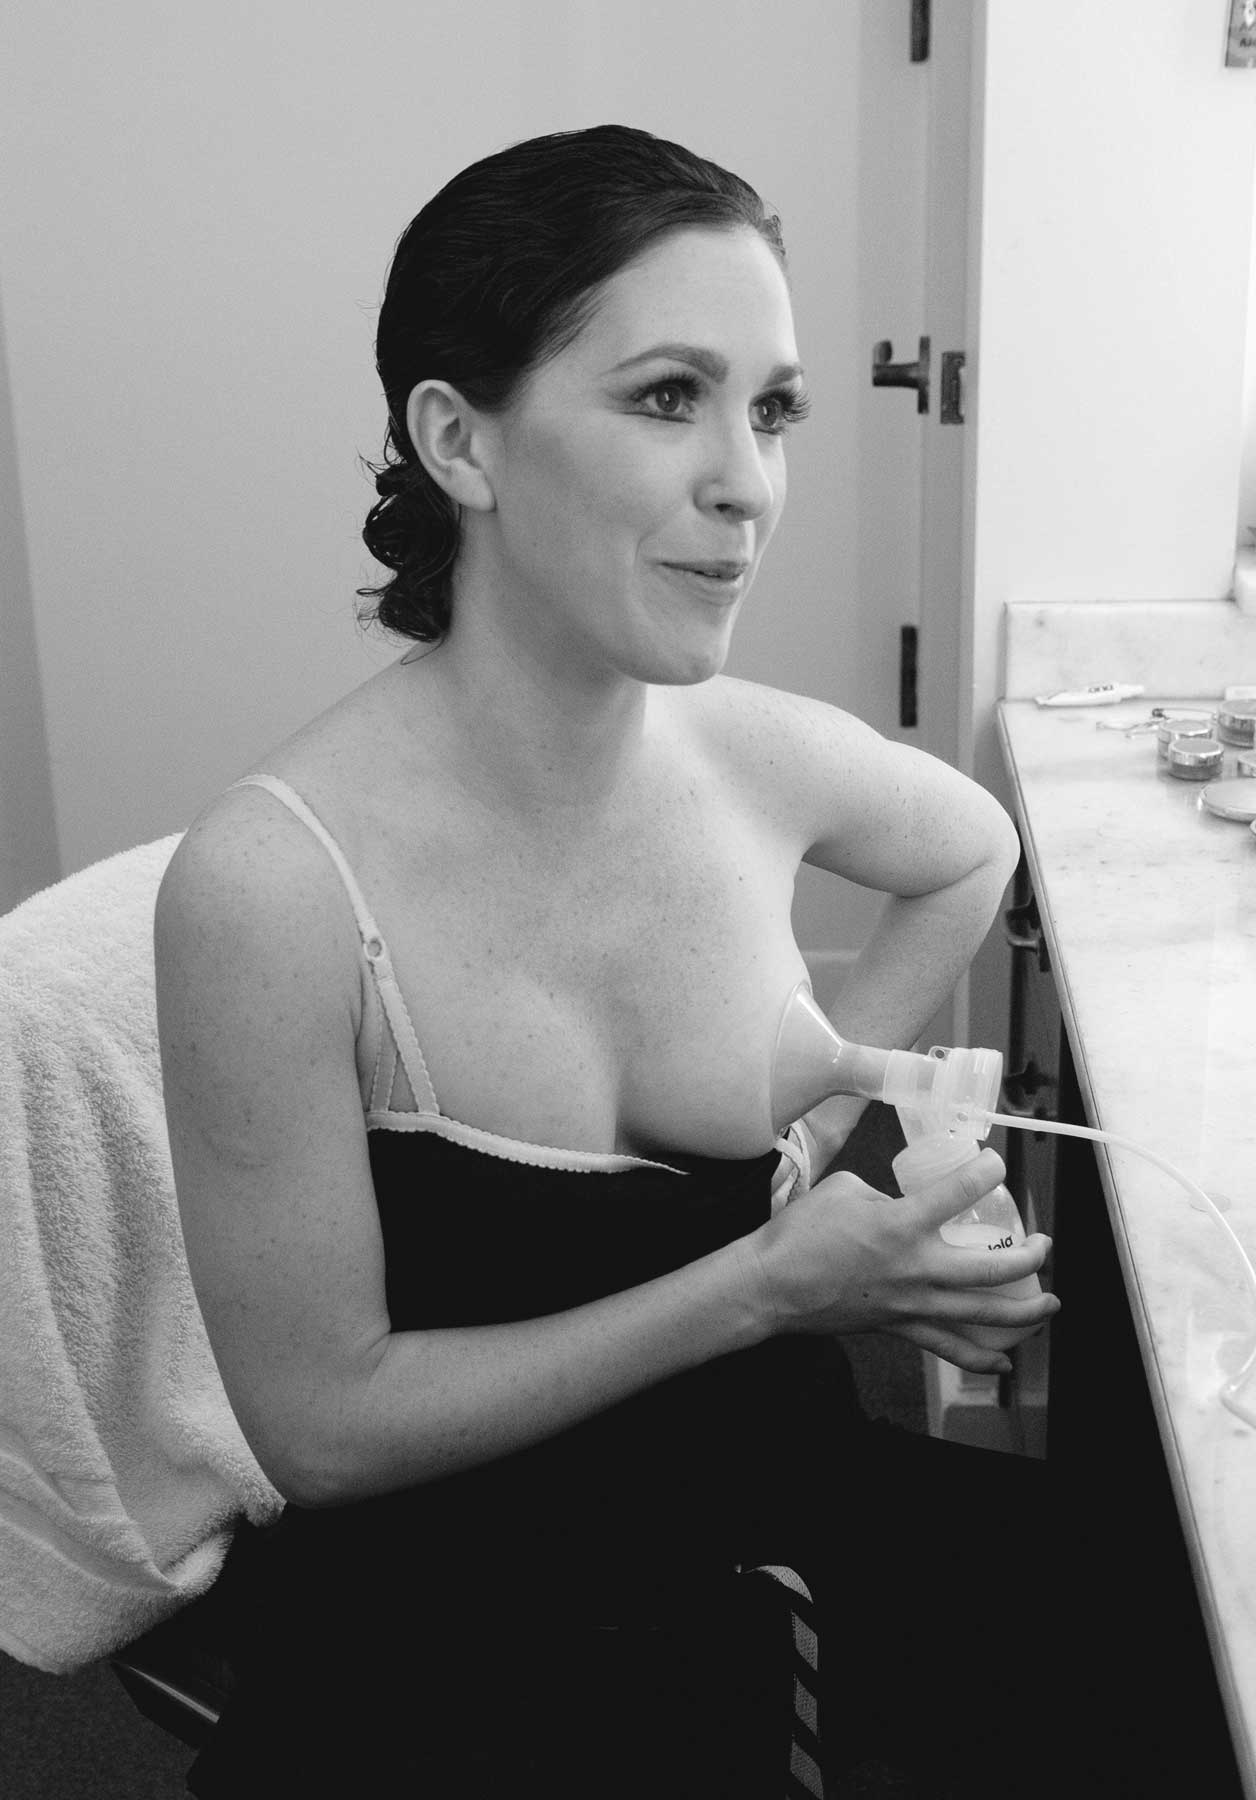 Kristin has received the ten-minute warning before her performance, so she pumps milk in her dressing room. 2009. Balancing Acts: Three Prima Ballerinas Becoming Mothers.